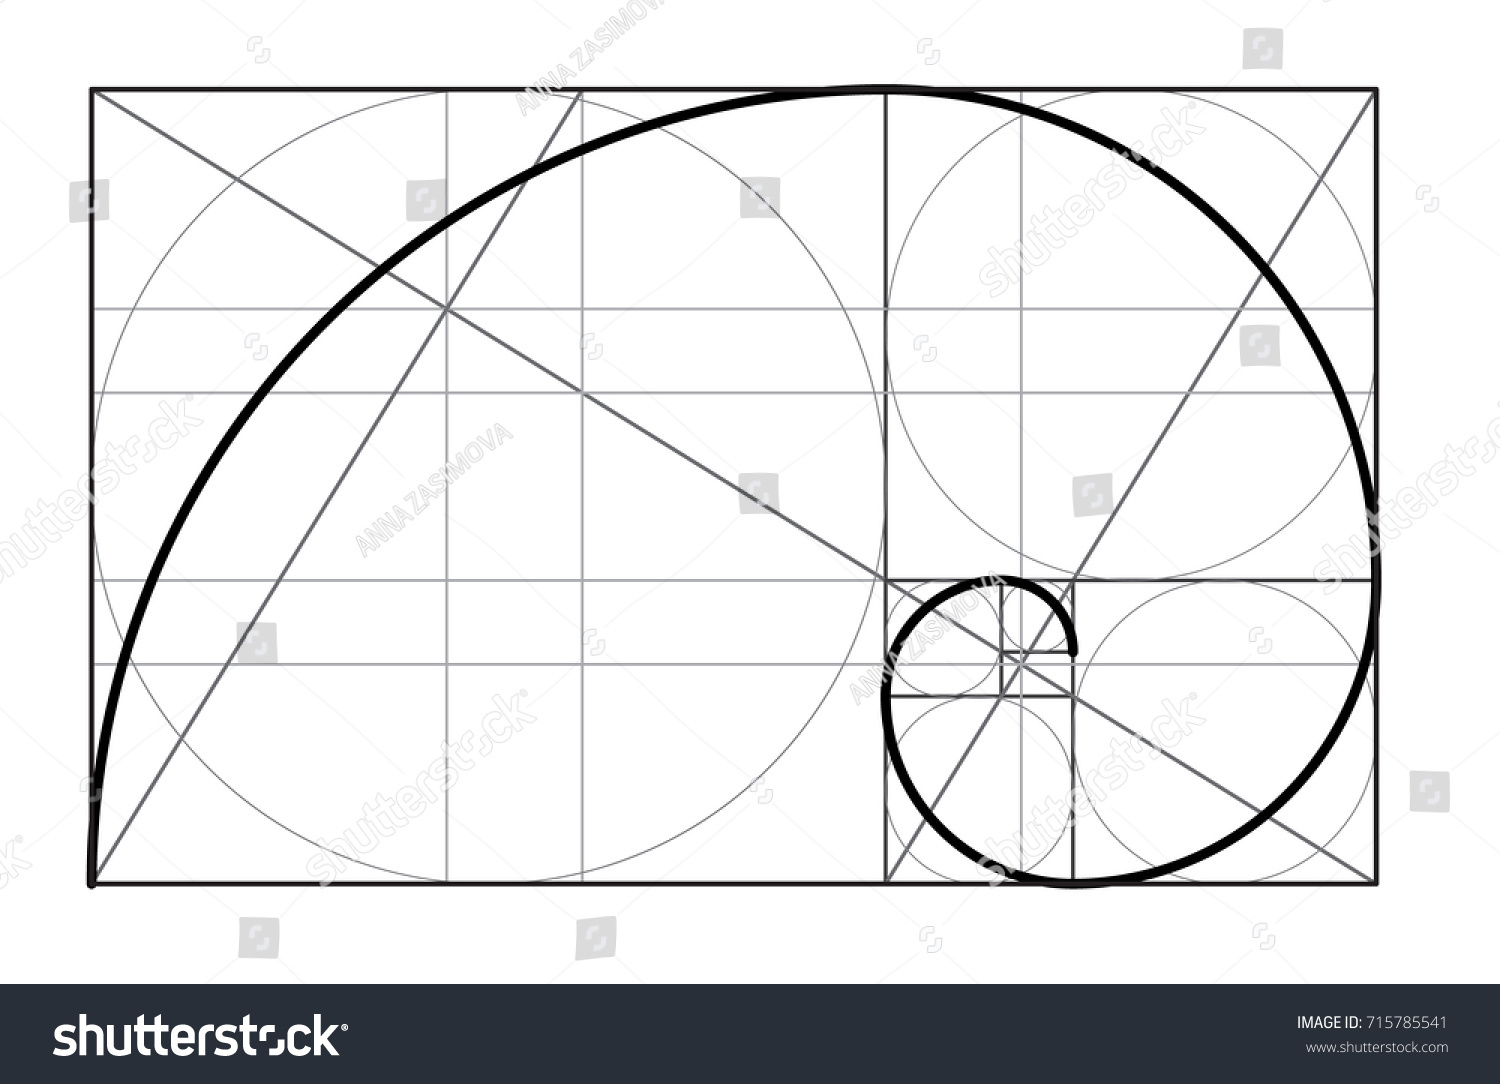 minimalistic style design golden ratio geometric stock vector rh shutterstock com golden ratio vector free golden ratio vector free